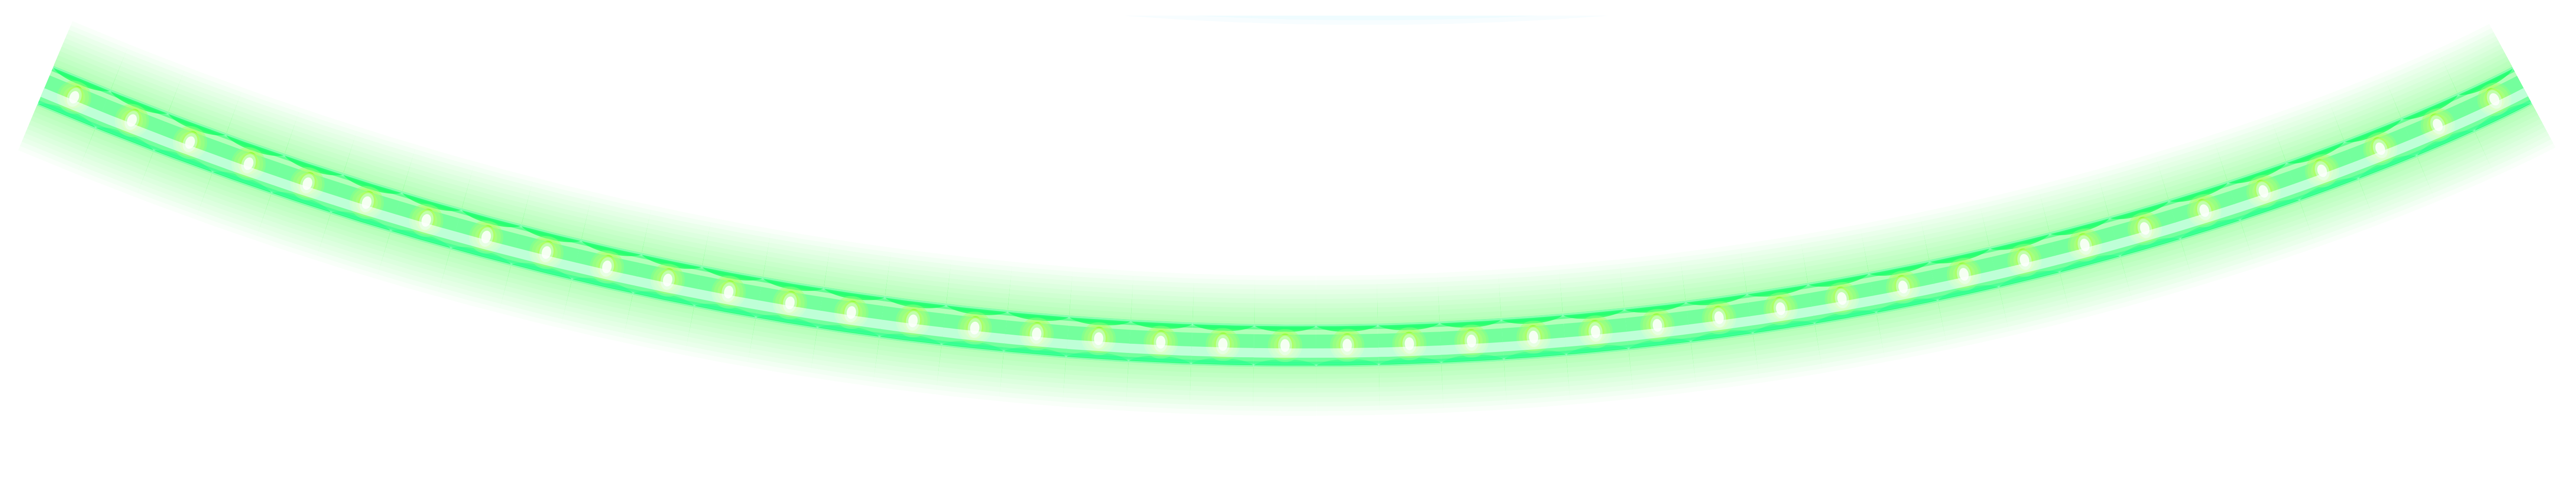 Green Glowing Christmas tube PNG Clipart.